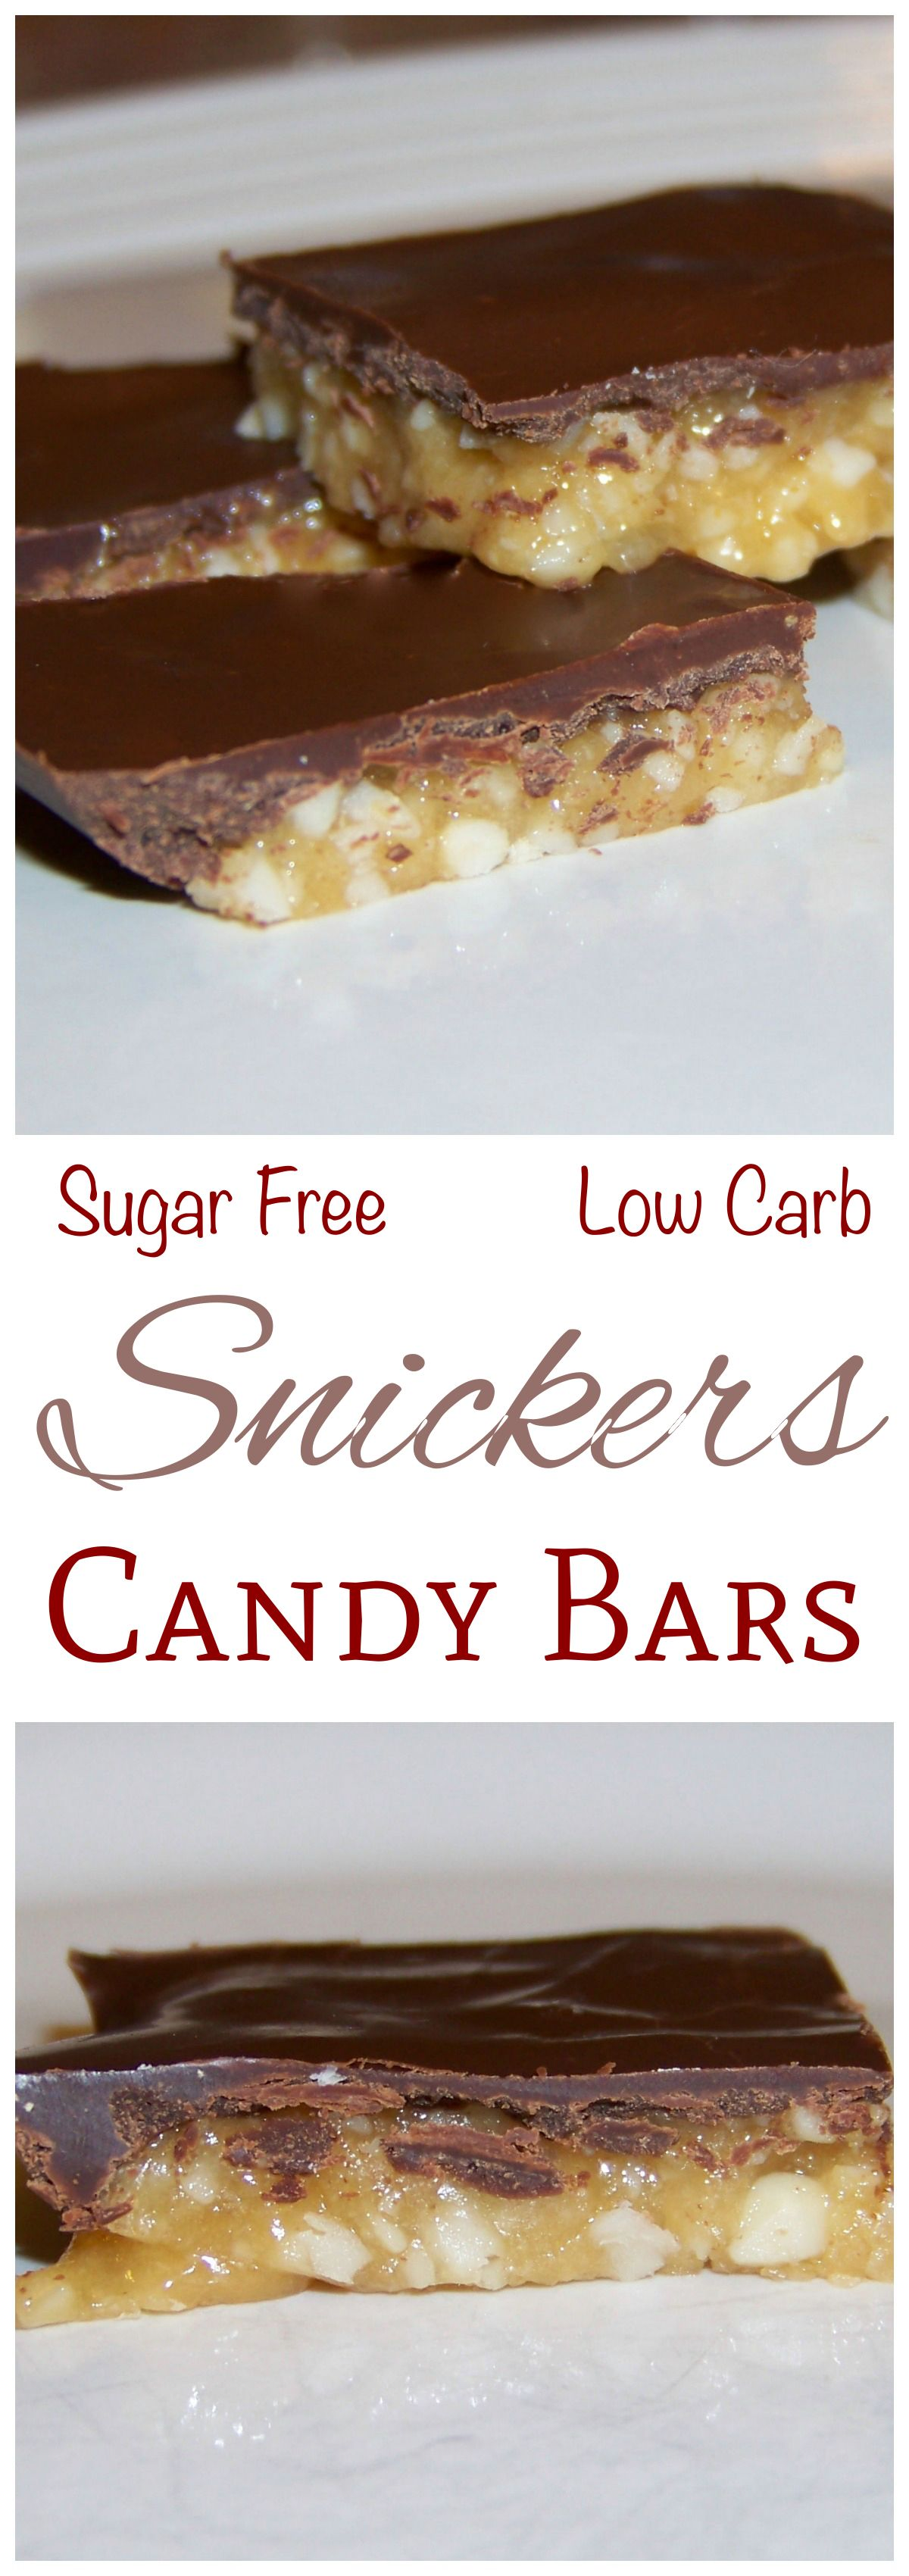 Zuckerfreie Desserts This Sugar Free Low Carb Keto Snickers Bar Recipe Makes A